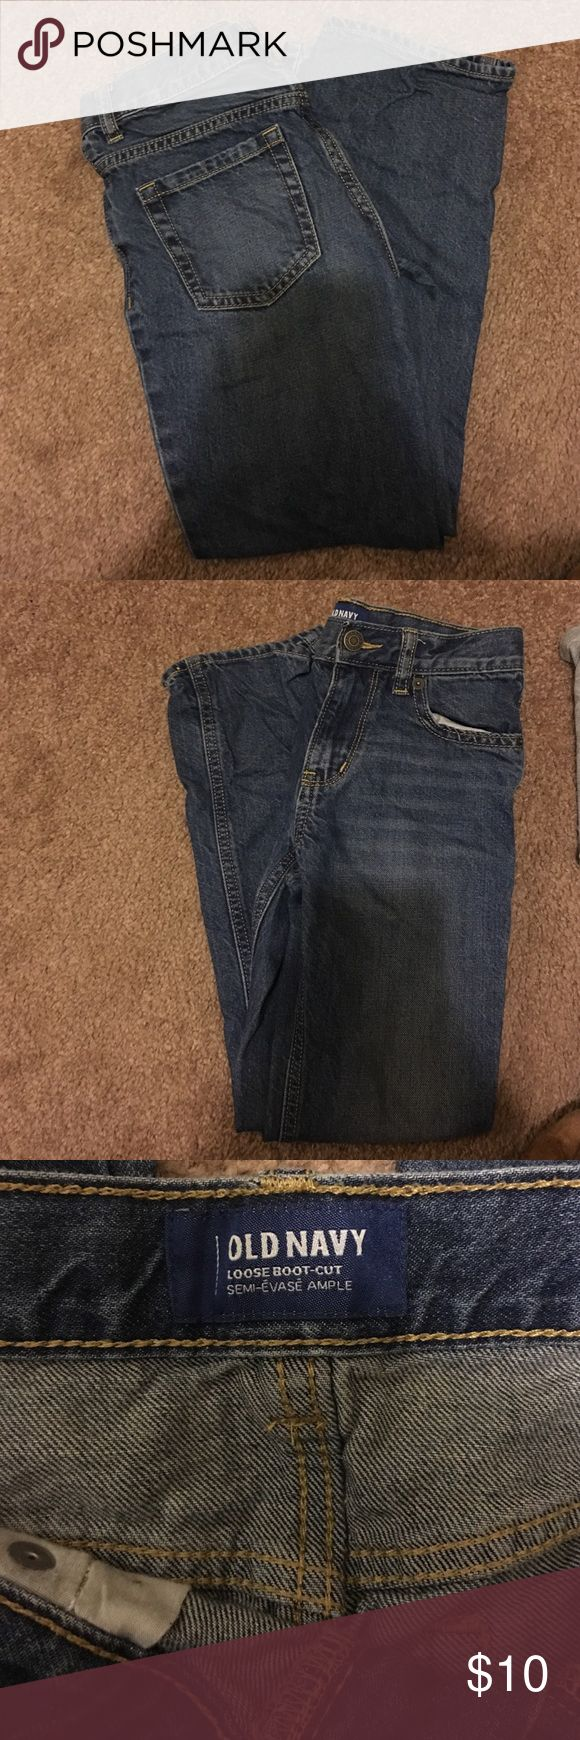 Boys old navy jeans Boys size 8 loose cut boot jeans. Old navy. Barely worn. Old Navy Bottoms Jeans